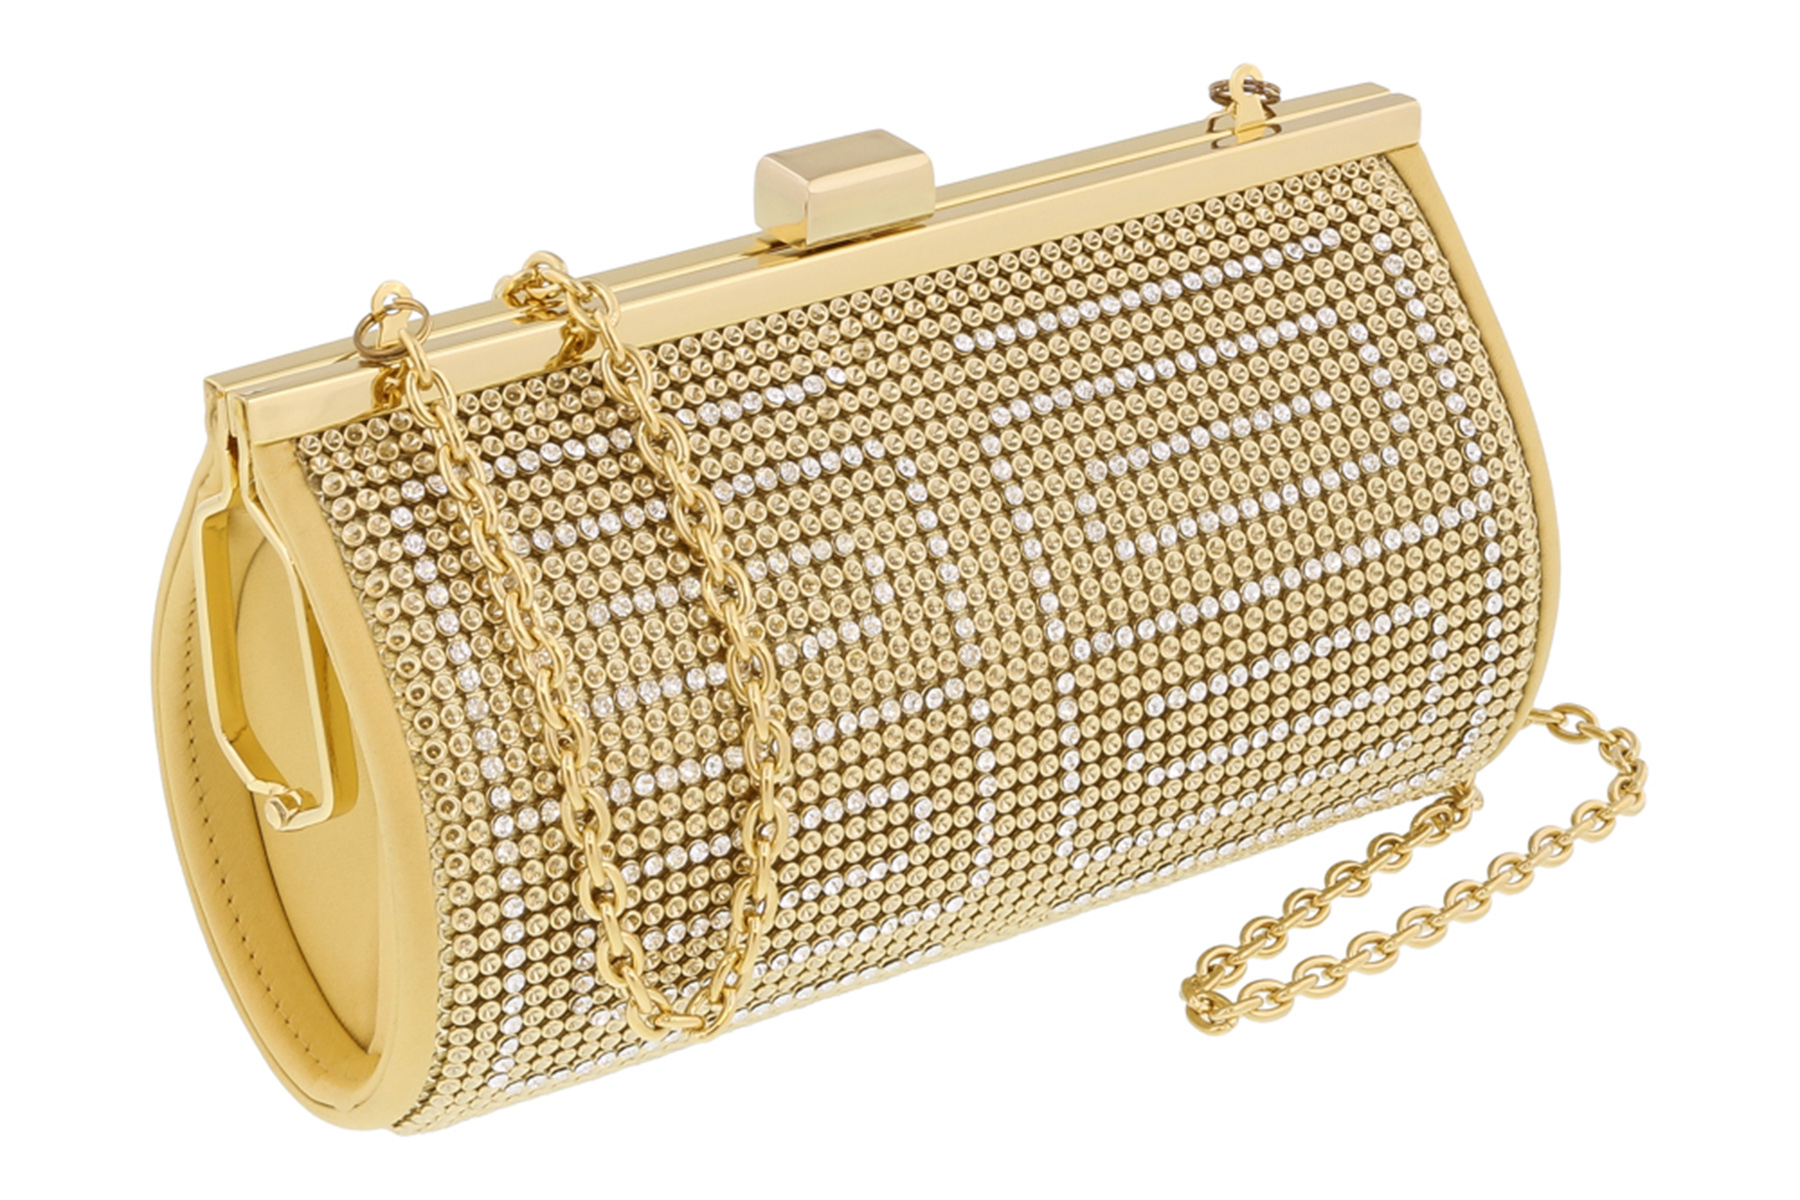 Scheilan  Bright Gold Metal  Crystal Embellished Clutch